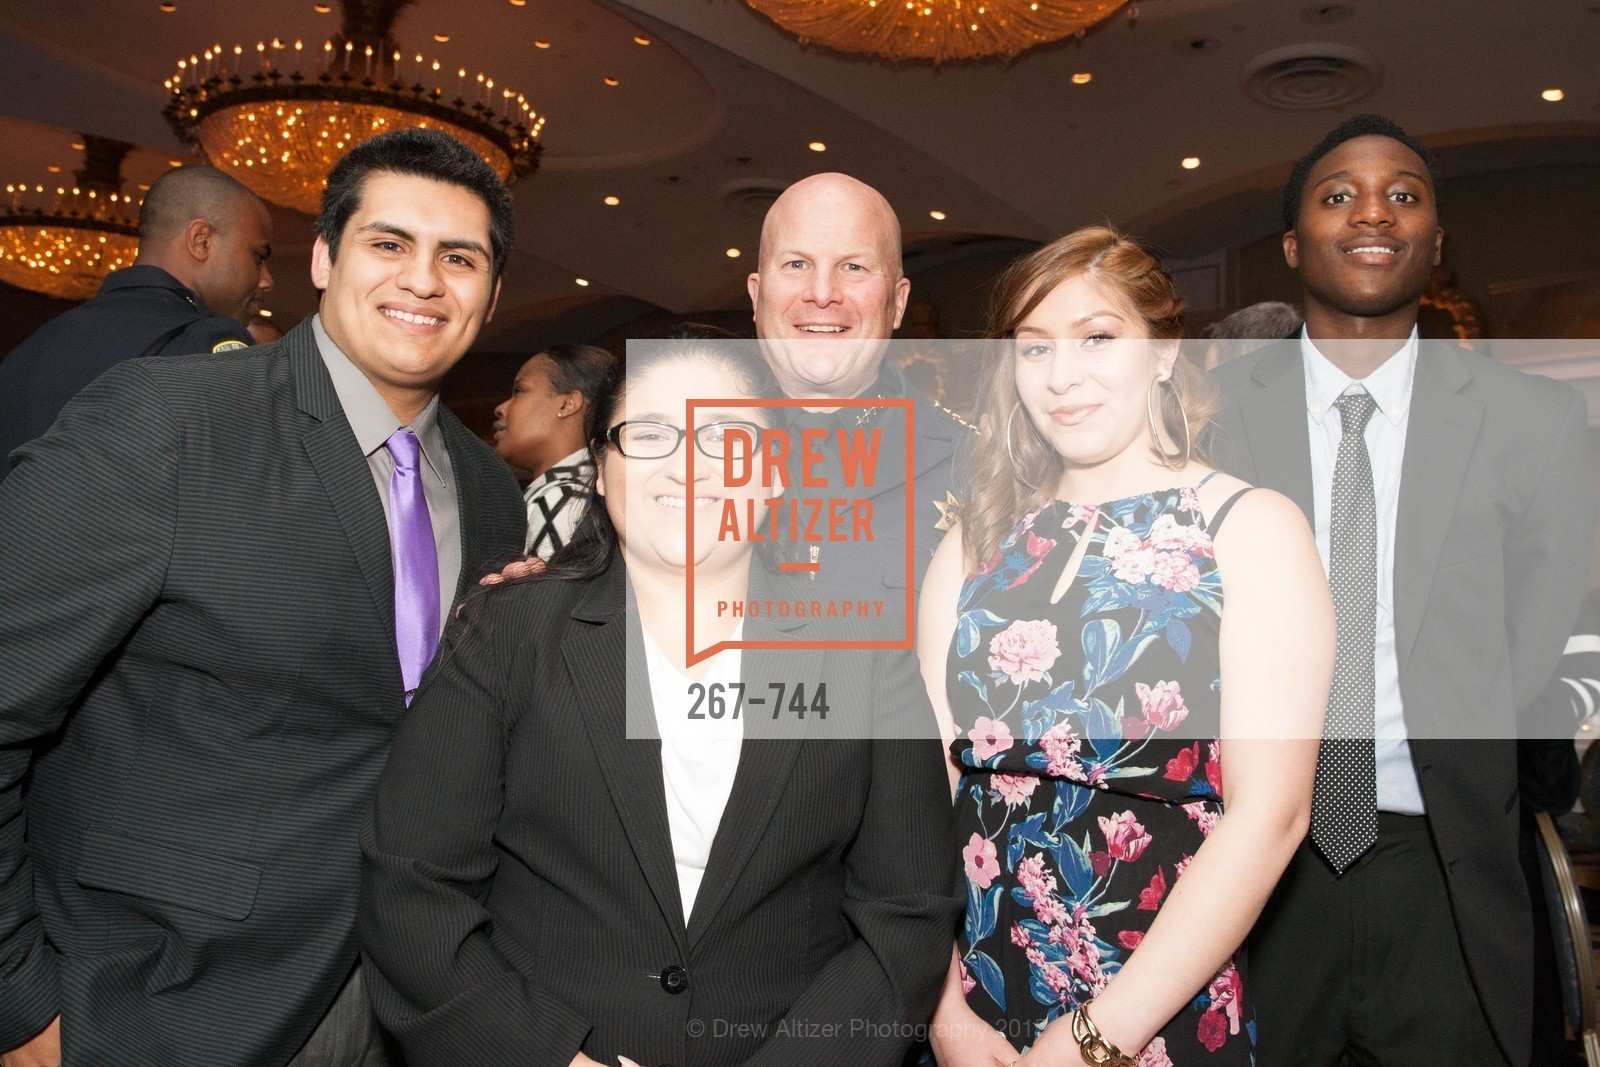 Joe Armijo, Carmen Sosa, Greg Suhr, Yuri Huerta, Khari Brown, Celebration of Launch of SHYP in Los Angeles, US, May 21st, 2015,Drew Altizer, Drew Altizer Photography, full-service agency, private events, San Francisco photographer, photographer california